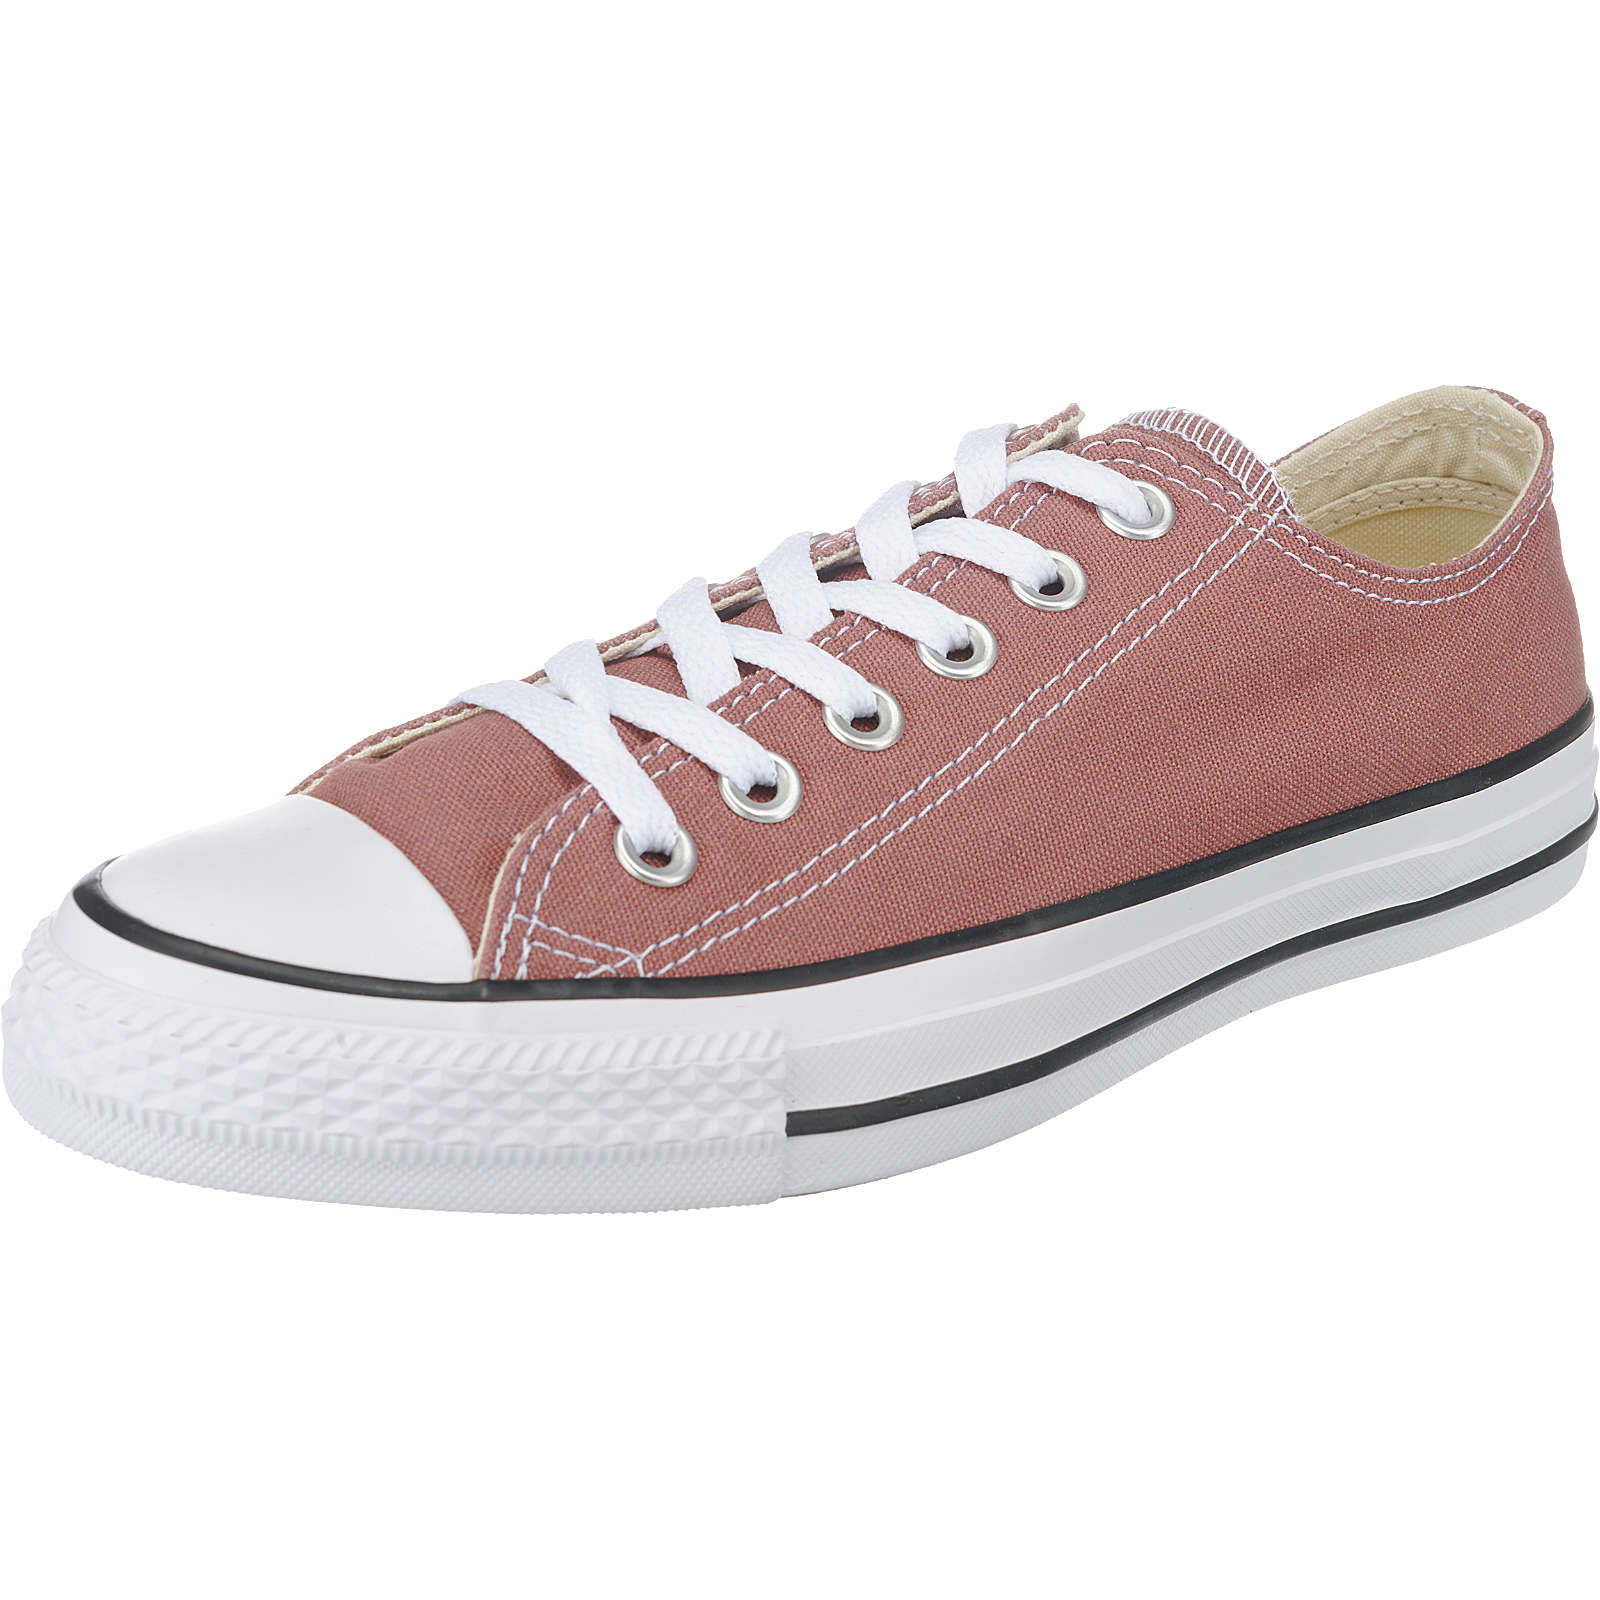 CONVERSE Chuck Taylor All Star Ox Sneakers rot Damen Gr. 37